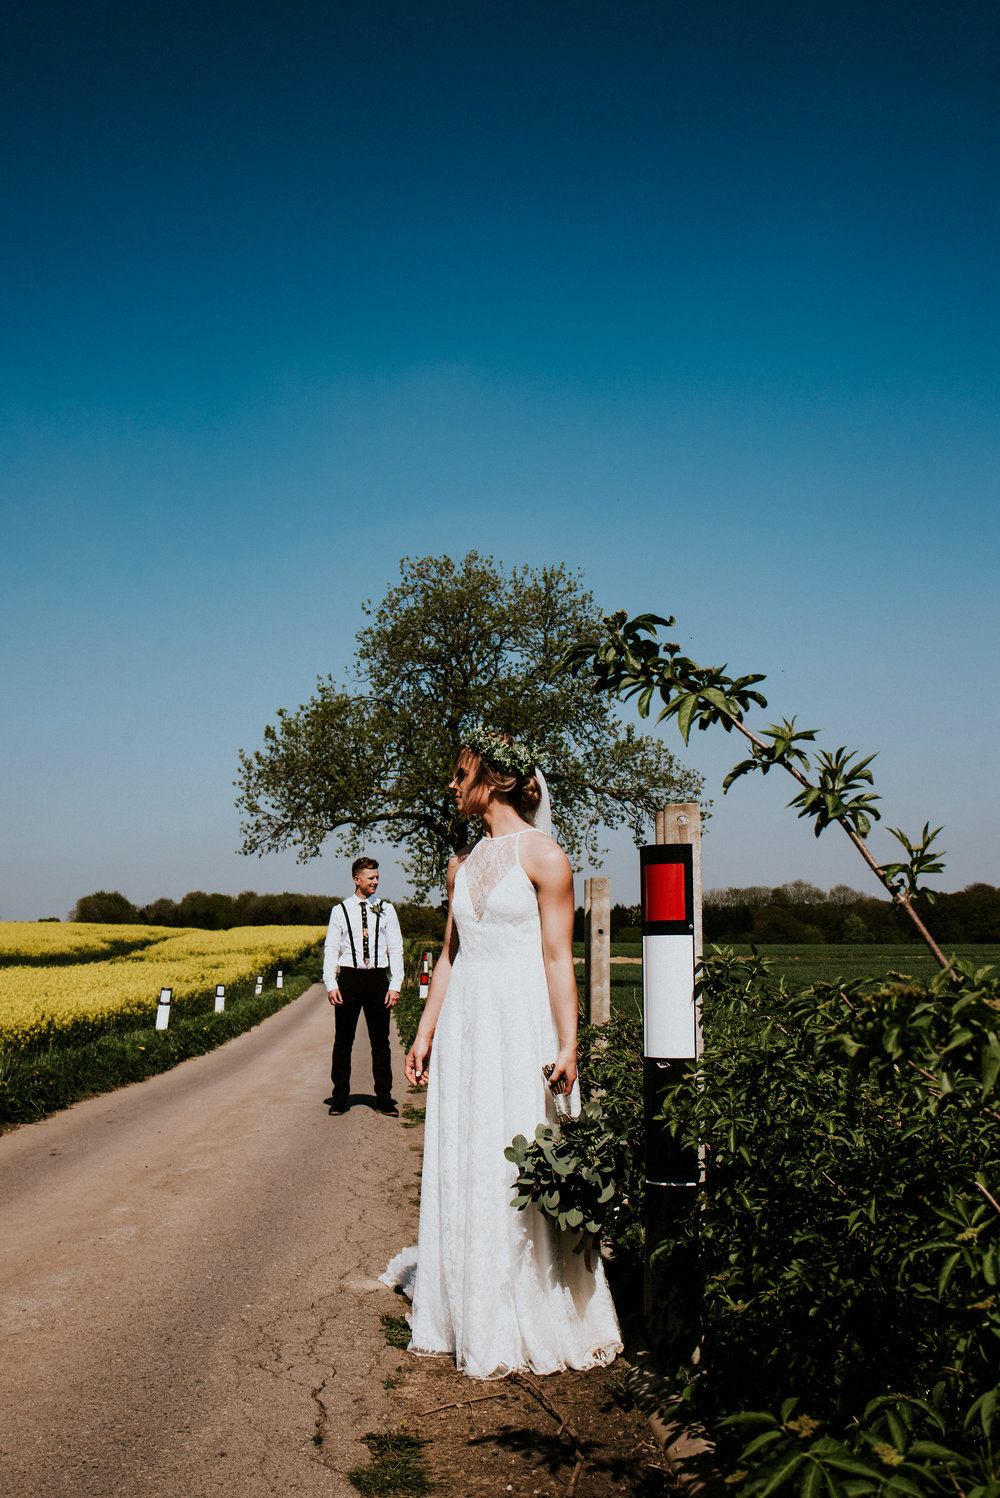 Spring vibes, Boho Barn Inspiration & Colourful Creative Portraits in this Swancar Farm Nottingham Alternative Wedding with Naomi & Alex